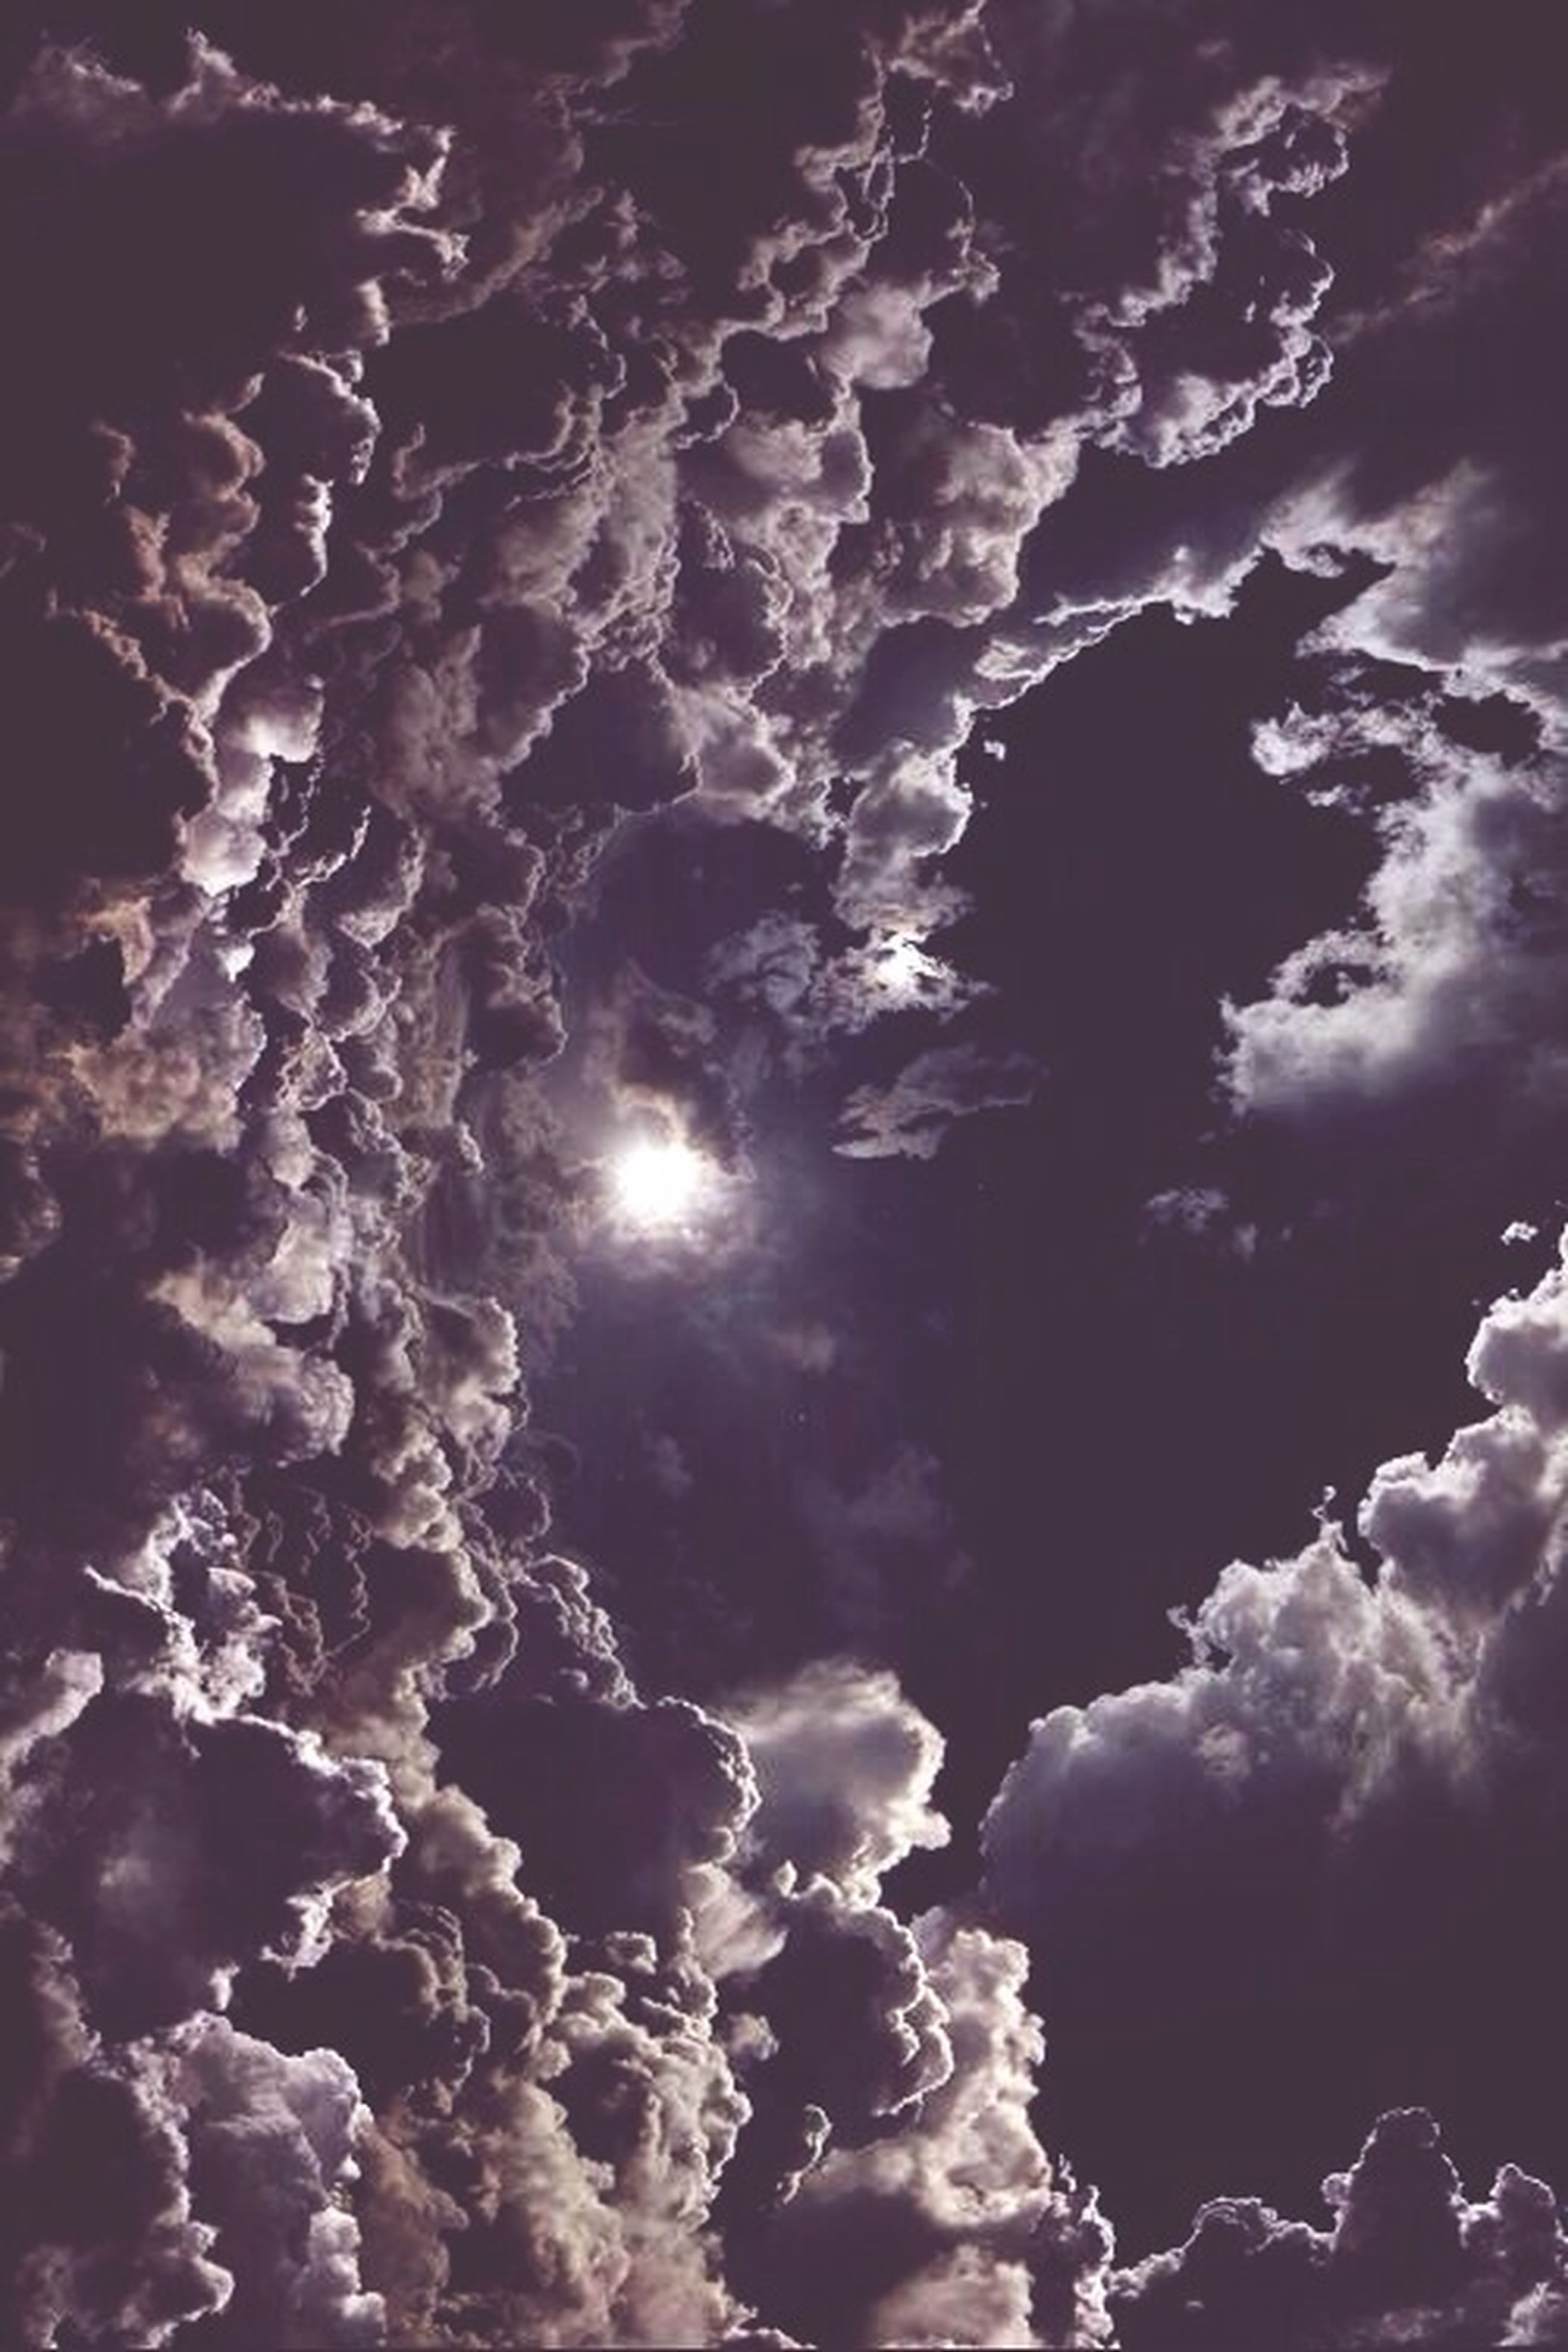 sky, low angle view, beauty in nature, tranquility, scenics, nature, tranquil scene, cloud - sky, idyllic, night, outdoors, sun, backgrounds, no people, sunlight, full frame, cloudy, glowing, majestic, tree